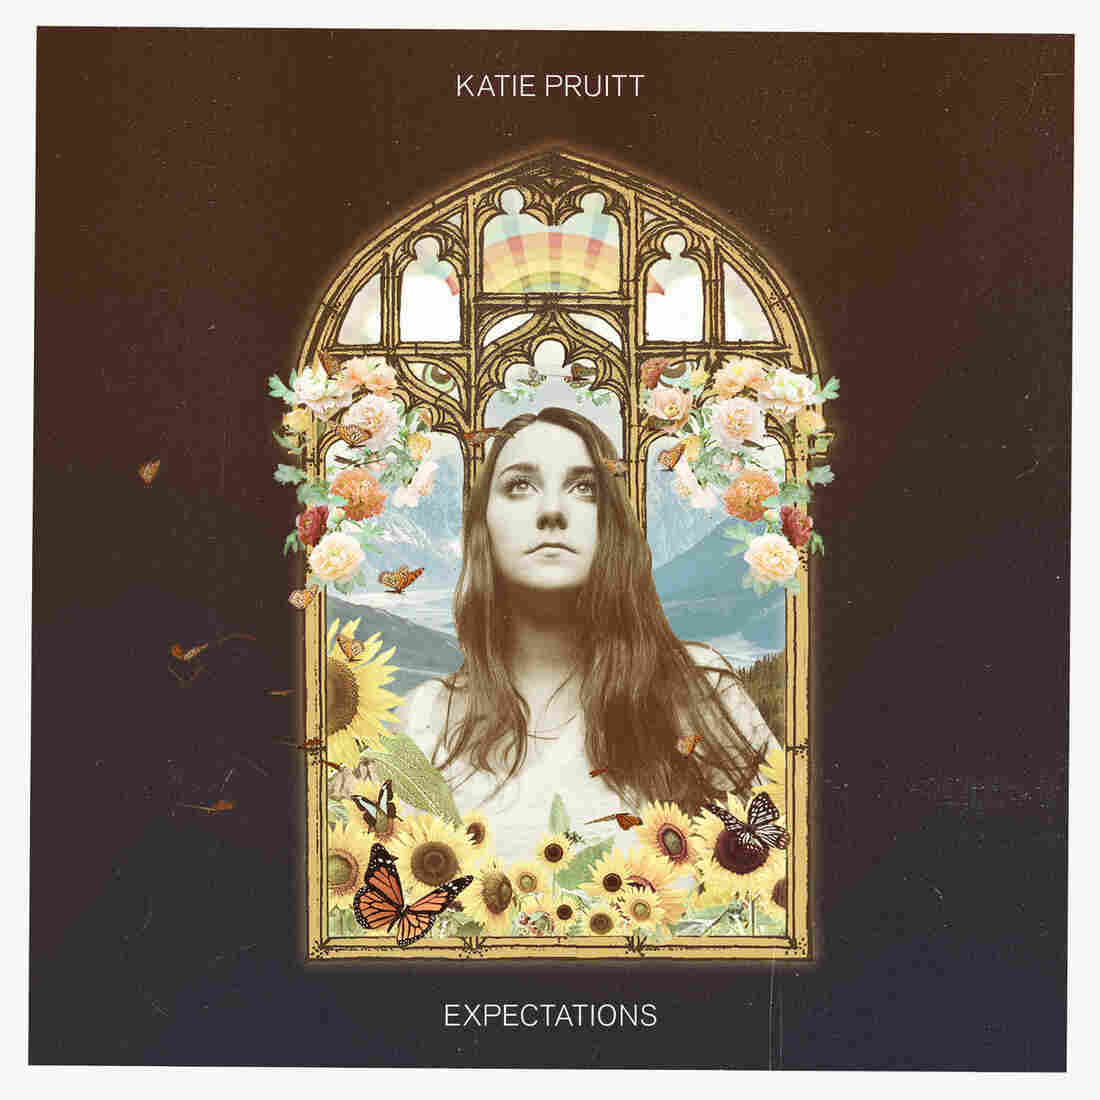 Katie Pruitt, Expectations